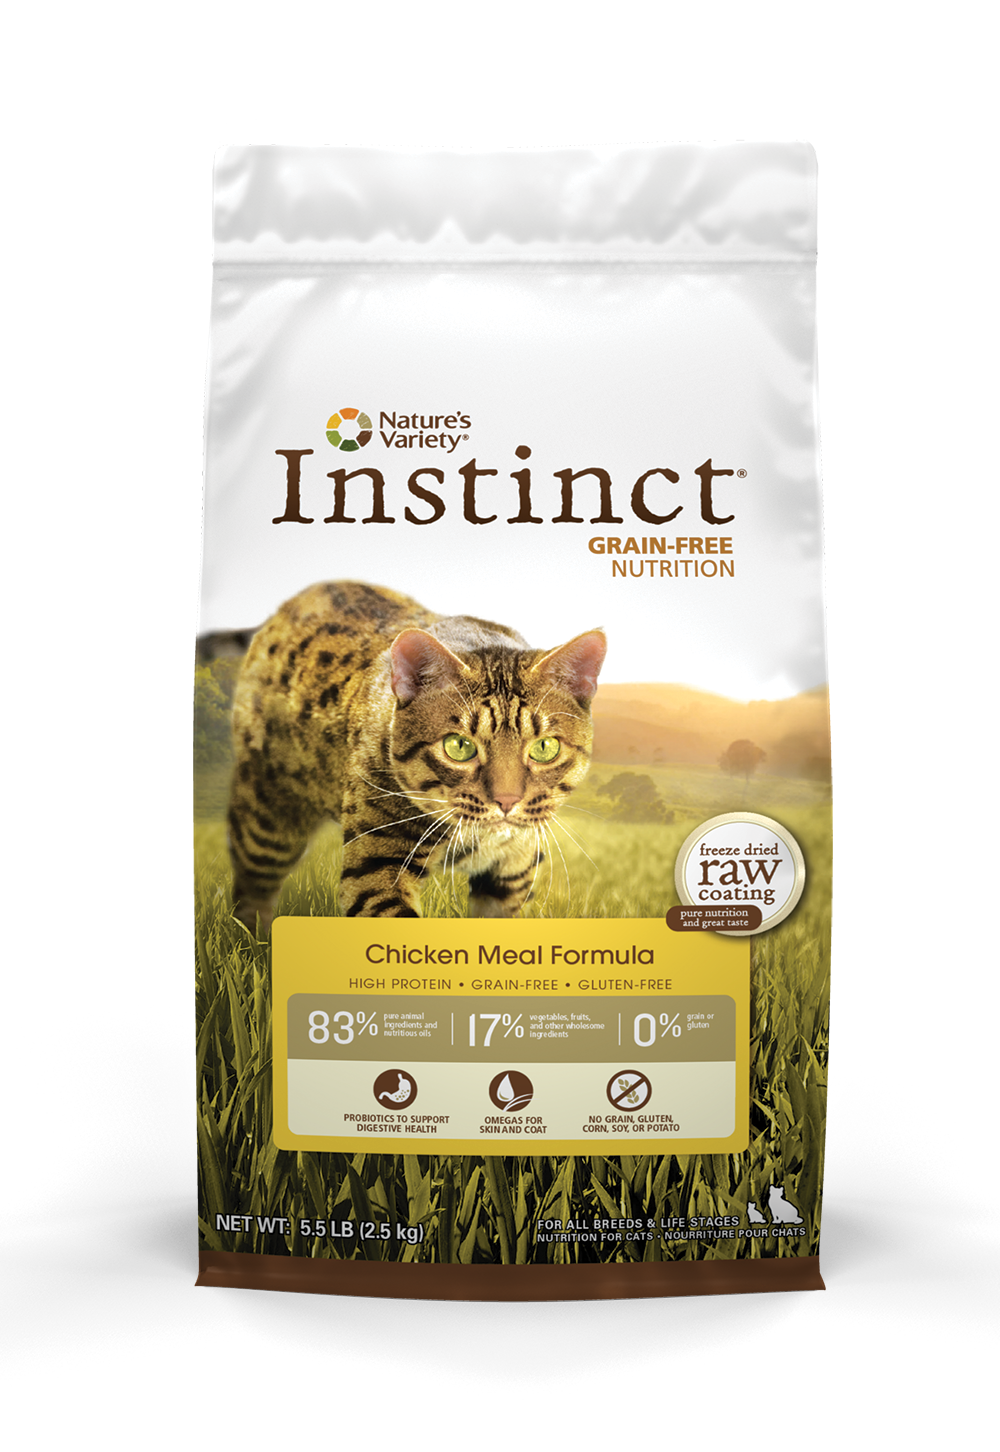 Family Farm And Home Dry Cat Food